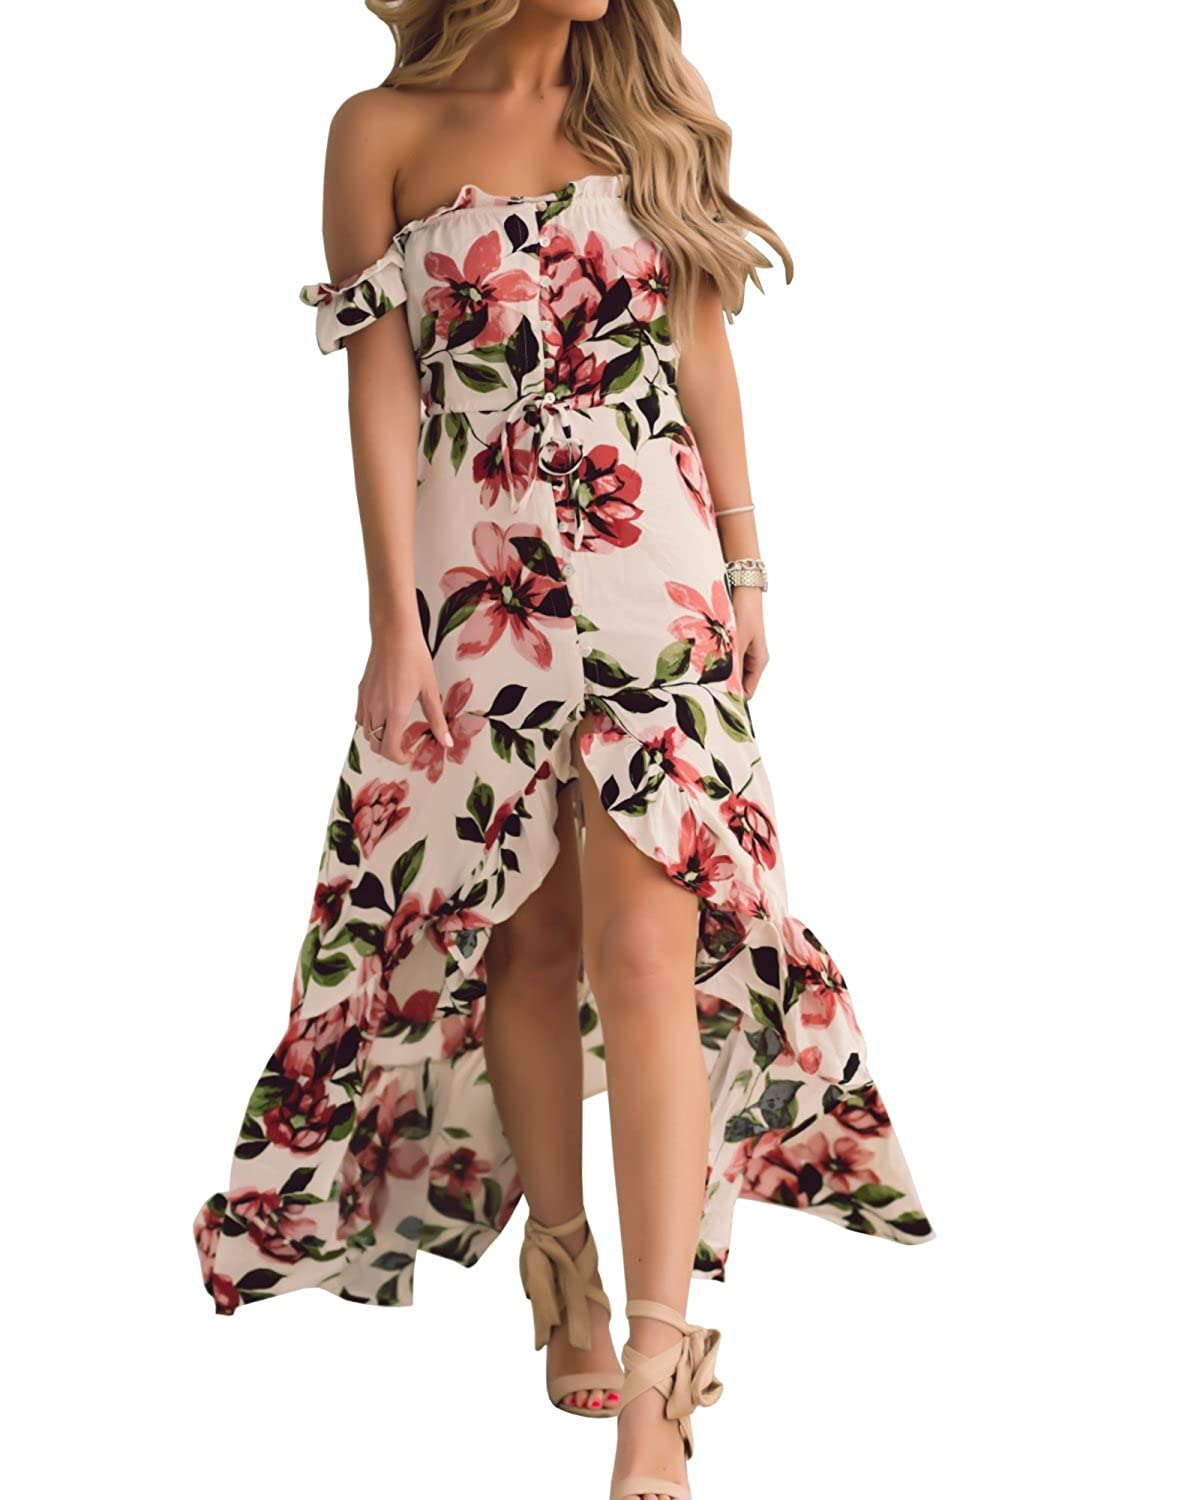 a2597b37fd0 Jeanewpole1 Womens Off the Shoulder Floral Maxi Dress Short sleeve High Slit  Chiffon Long Dress ❀Gender:Women ❀Style:Fashion, Sexy